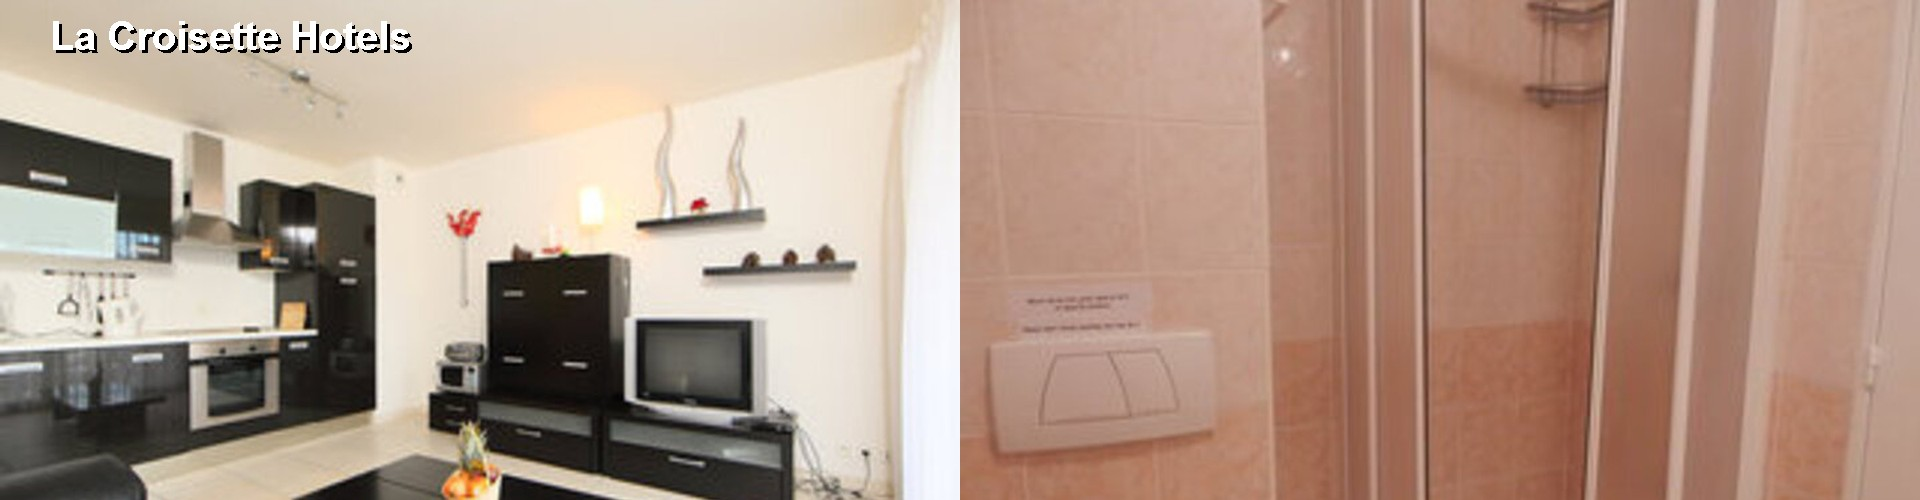 5 Best Hotels near La Croisette